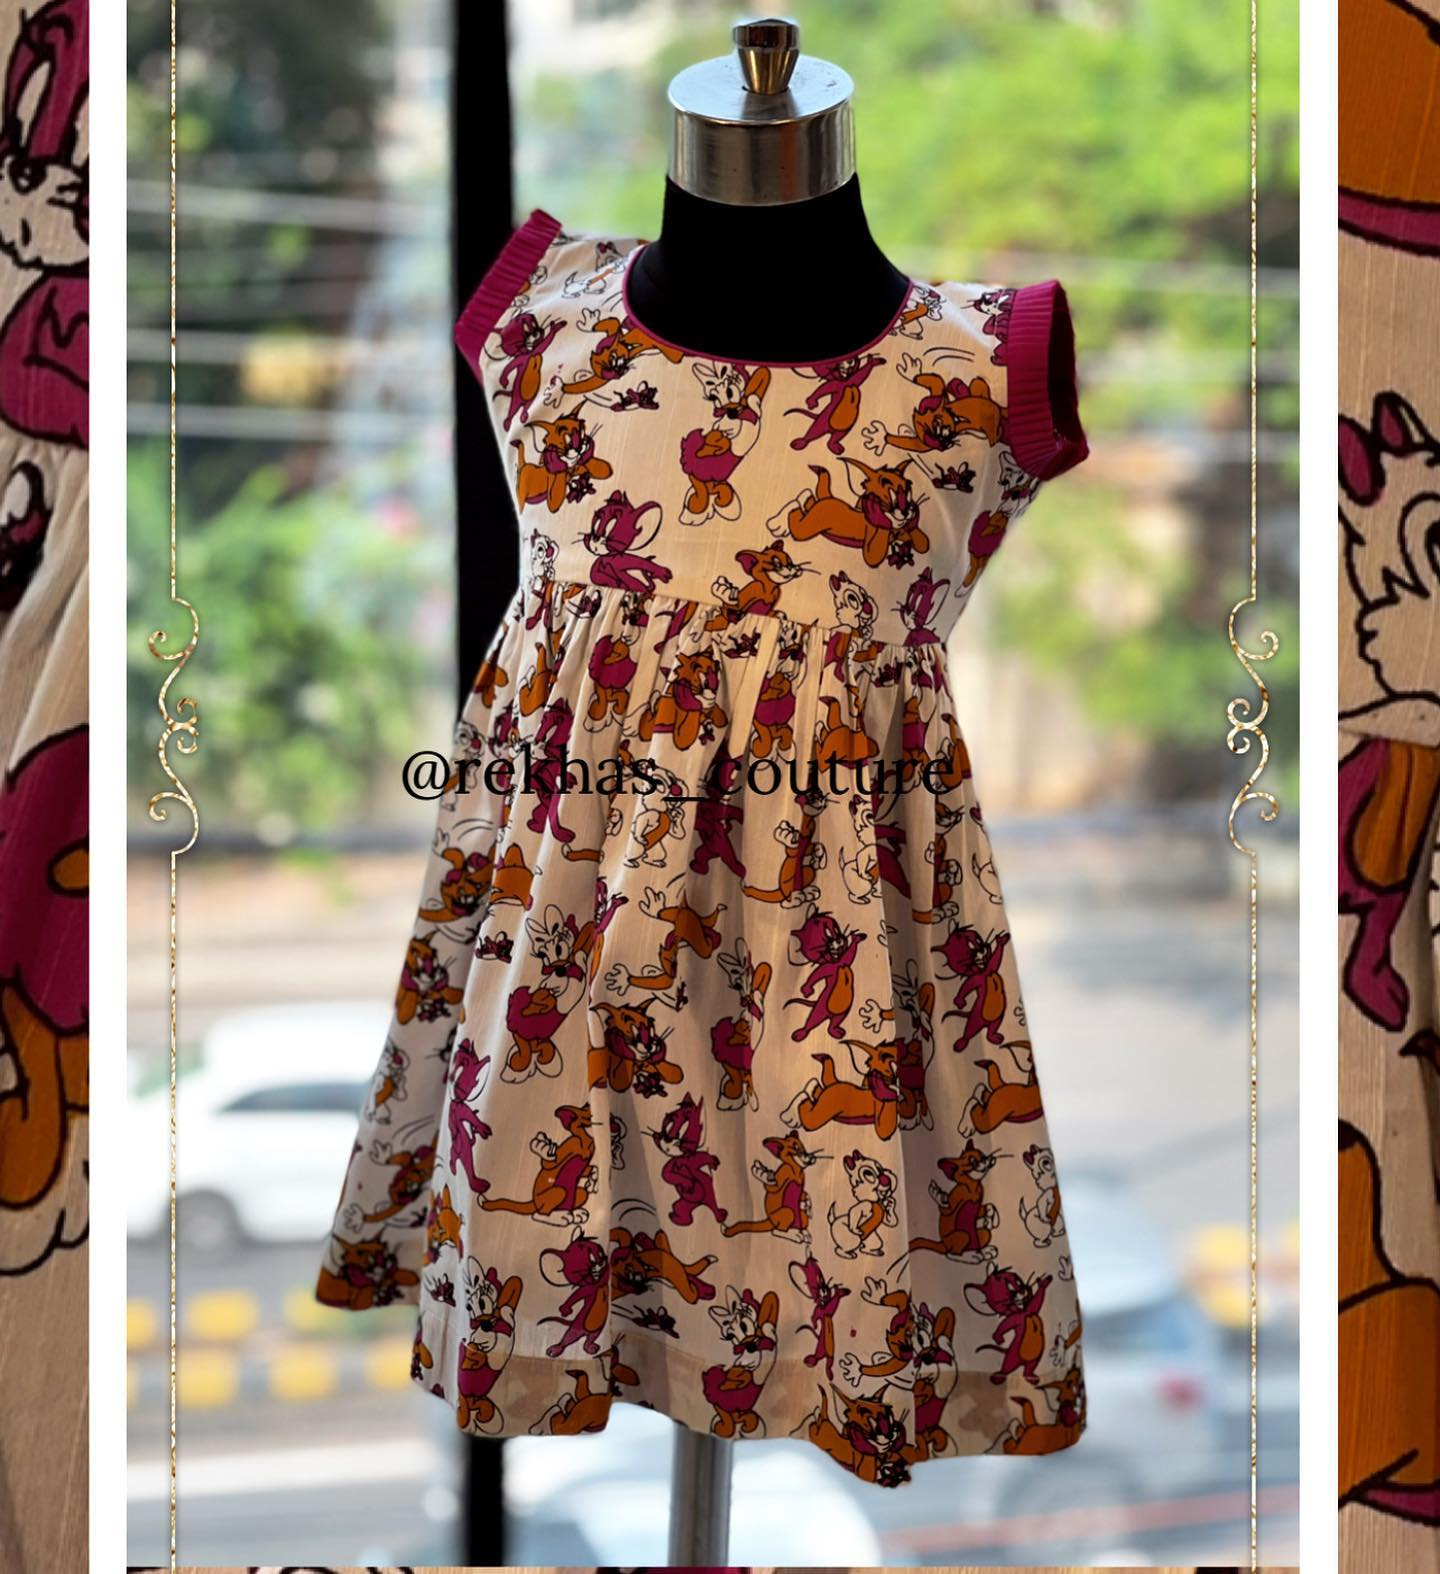 Beautiful tom and jerry print kids frock. 2021-05-20